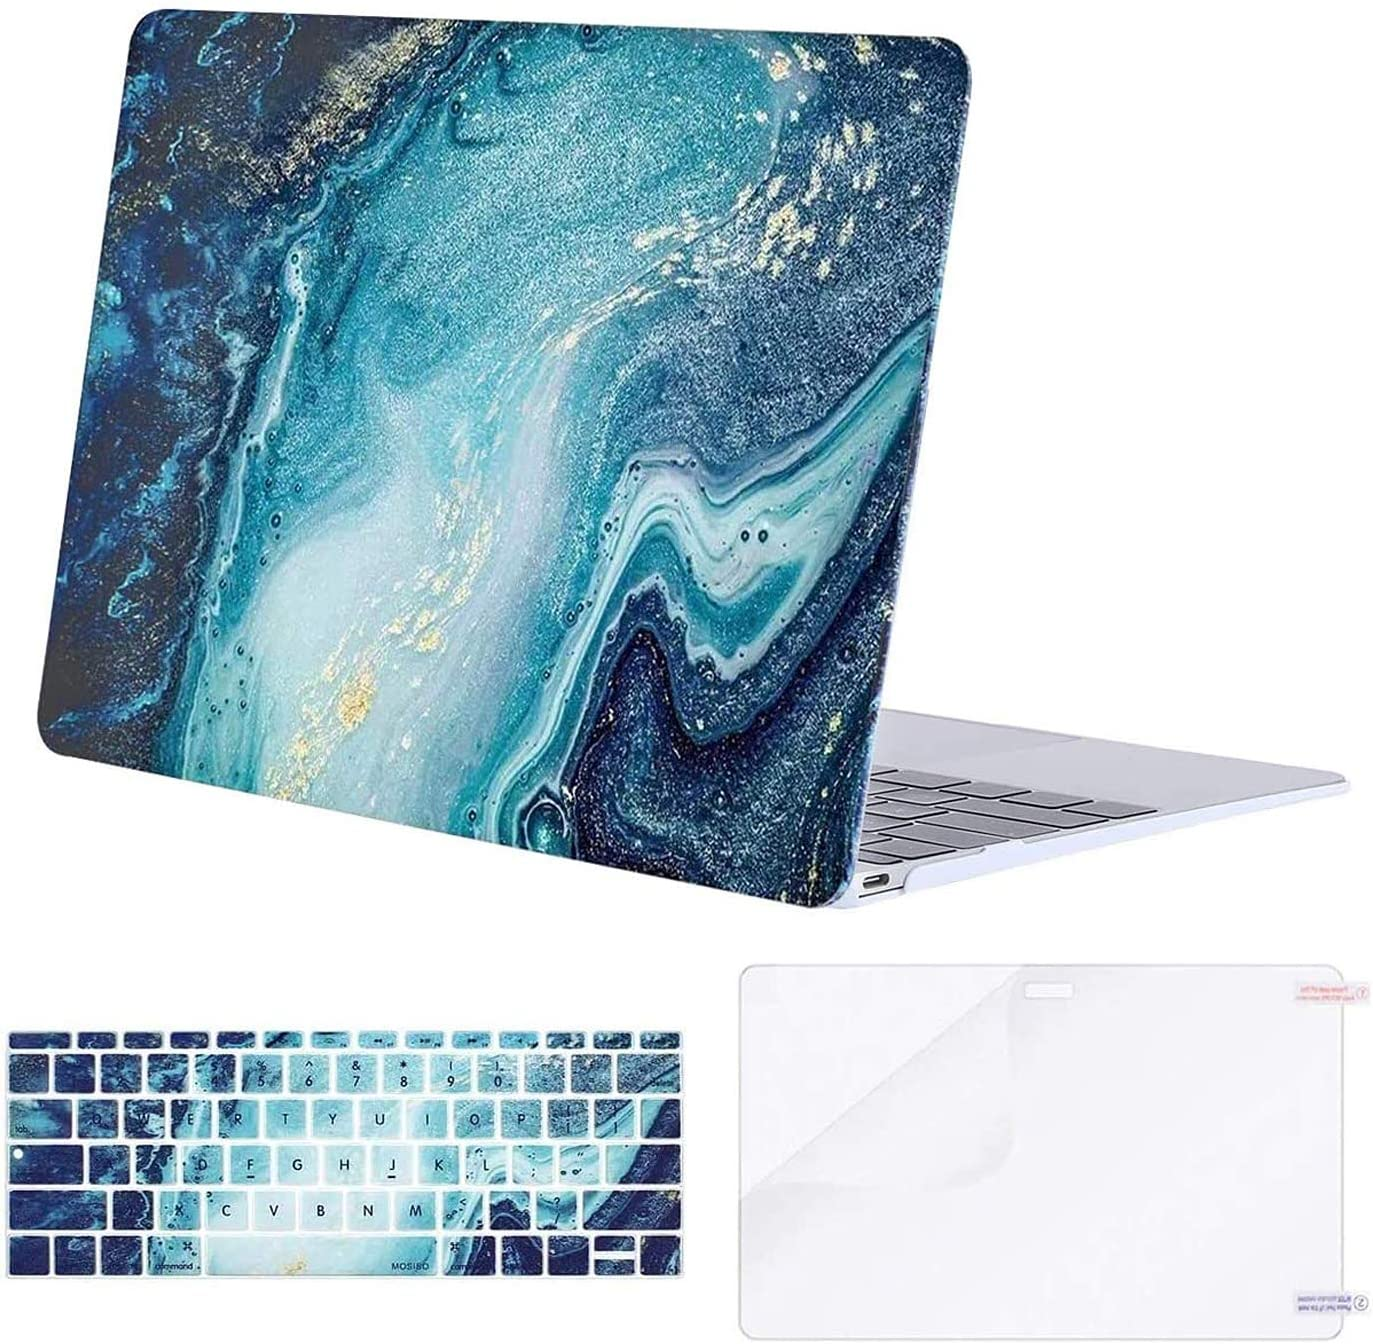 MOSISO MacBook 12 inch Case (Model A1534, Release 2017 2016 2015), Plastic Creative Wave Marble Hard Shell & Keyboard Cover & Screen Protector Compatible with MacBook 12 inch with Retina Display, Blue